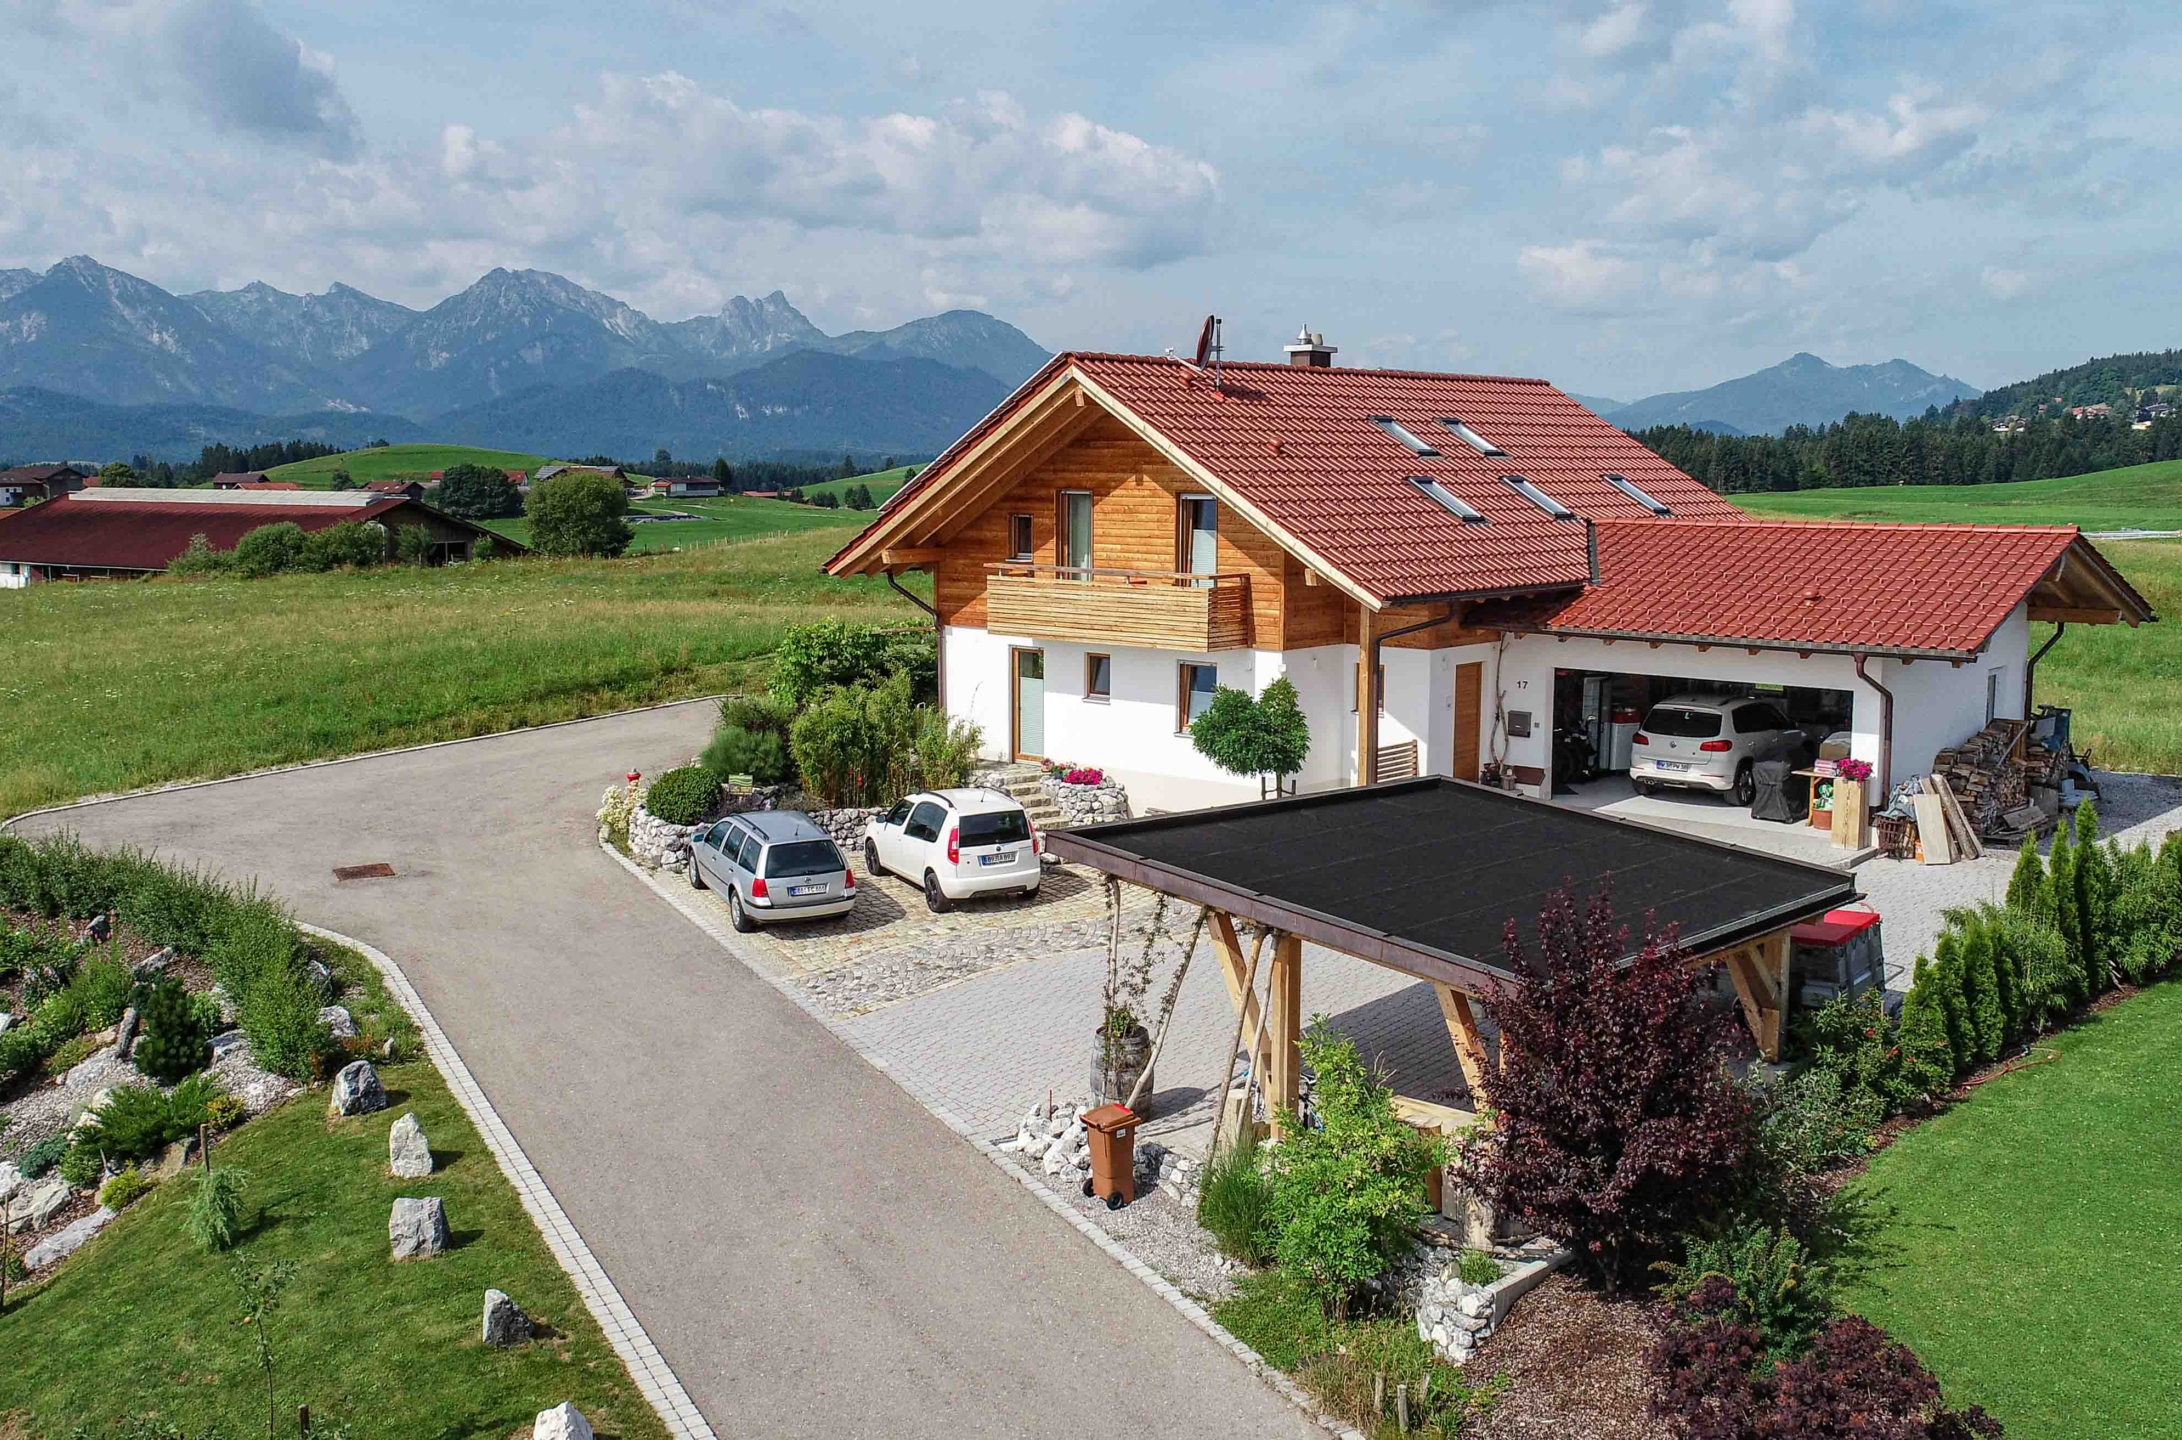 Physiotherapie Praxis in Rieden am Forggensee